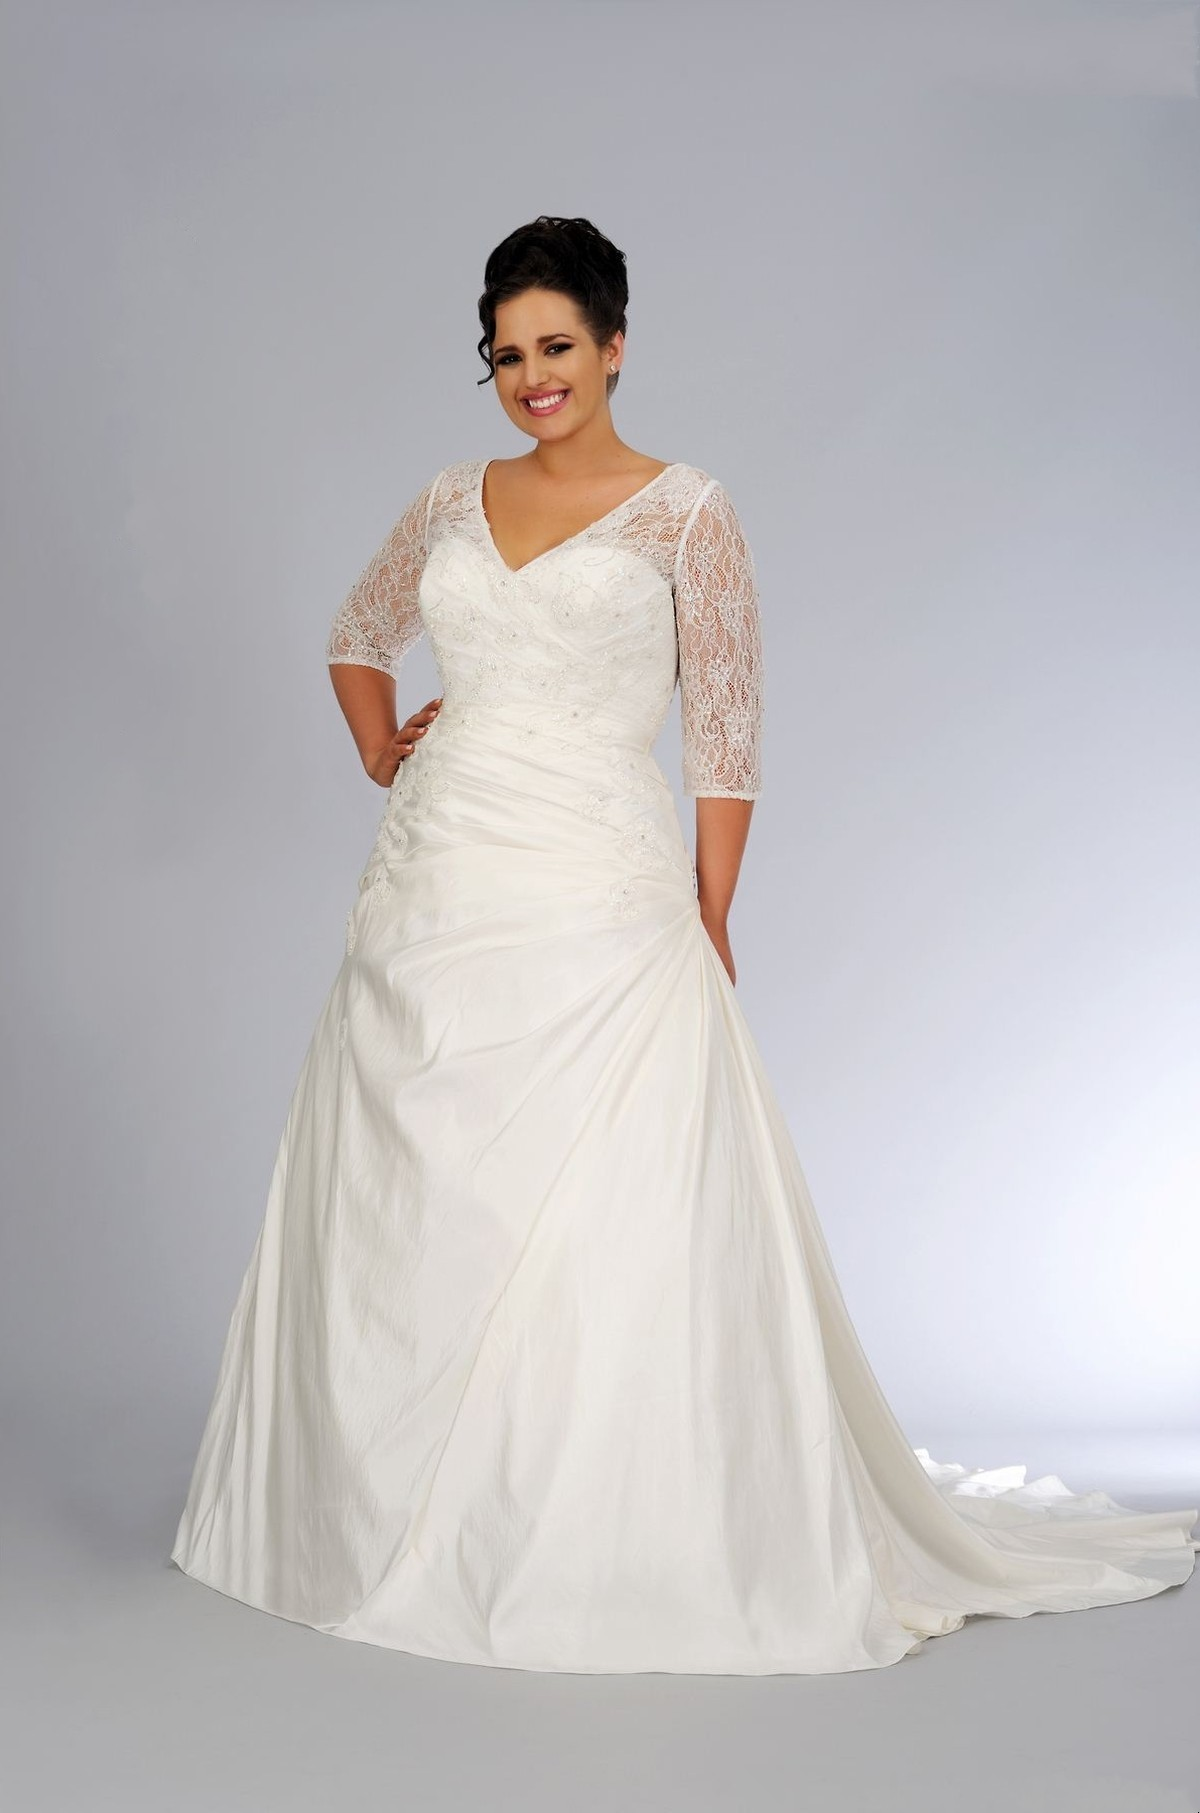 Plus Size Dresses For Wedding Guest Style Jeans